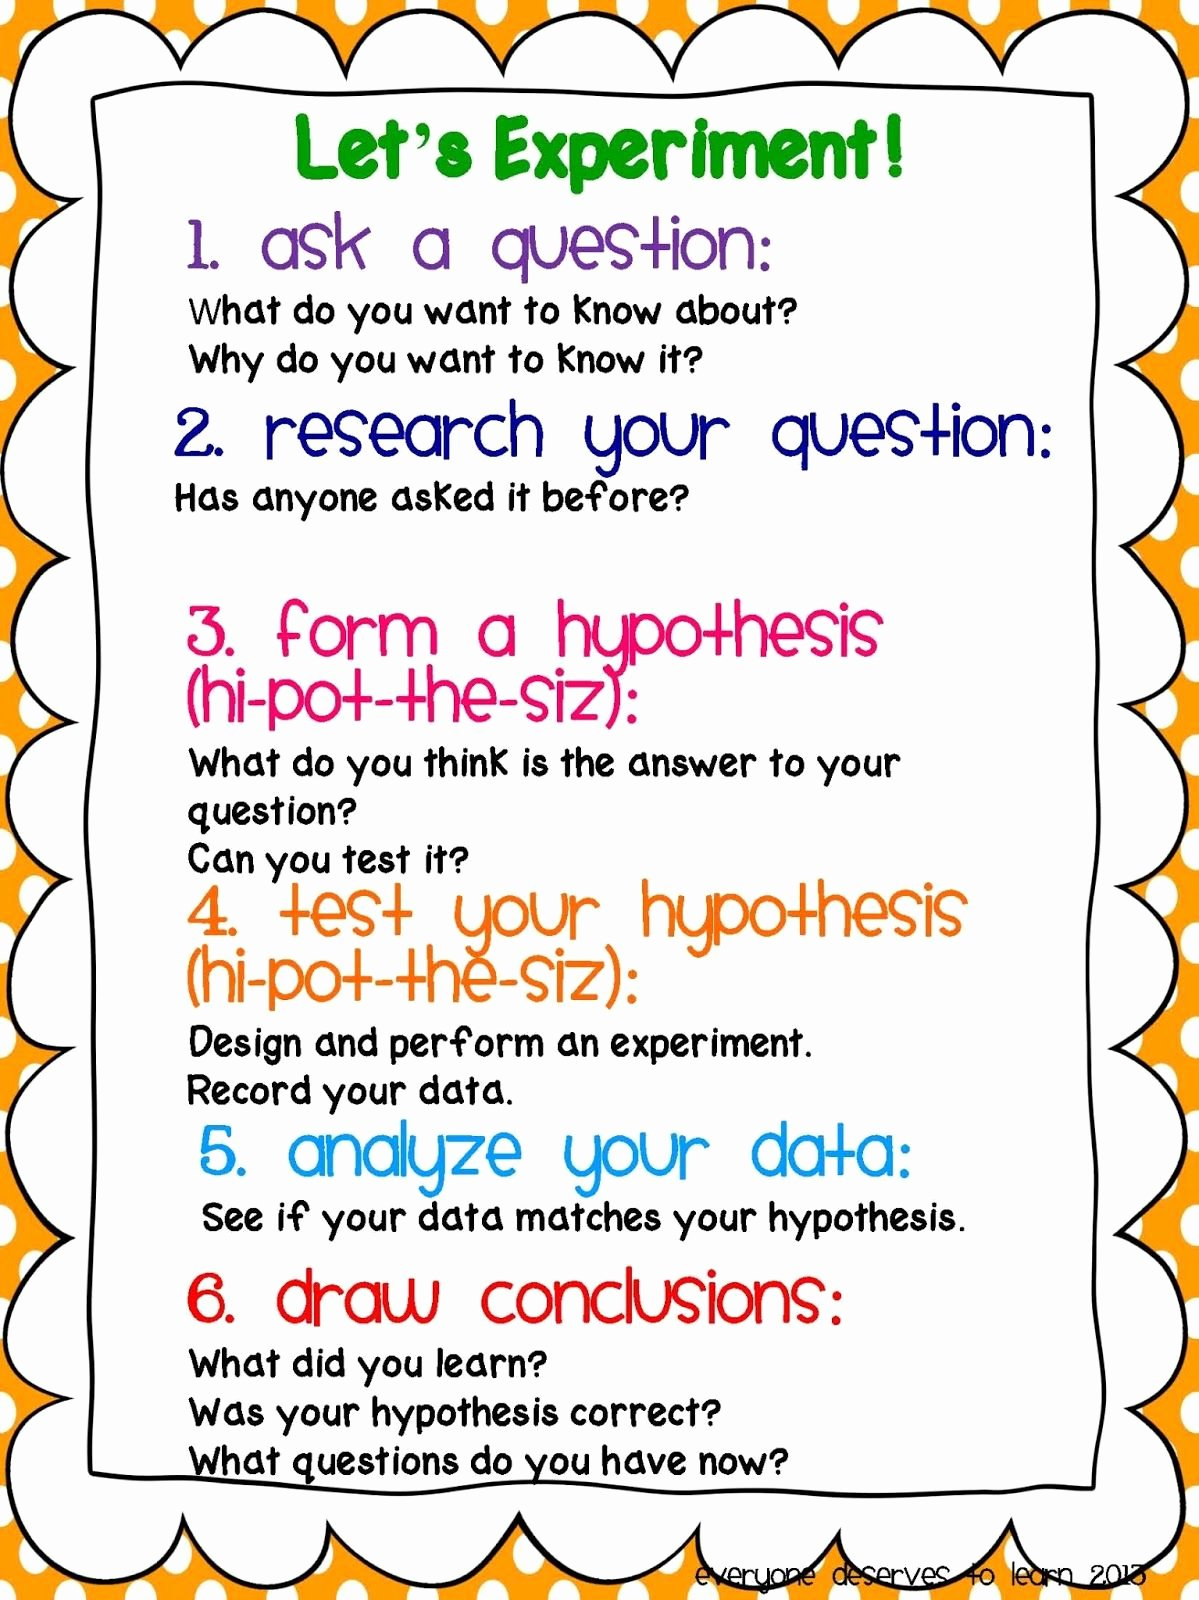 Scientific Method Worksheet Middle School Awesome Scientific Method for Kids